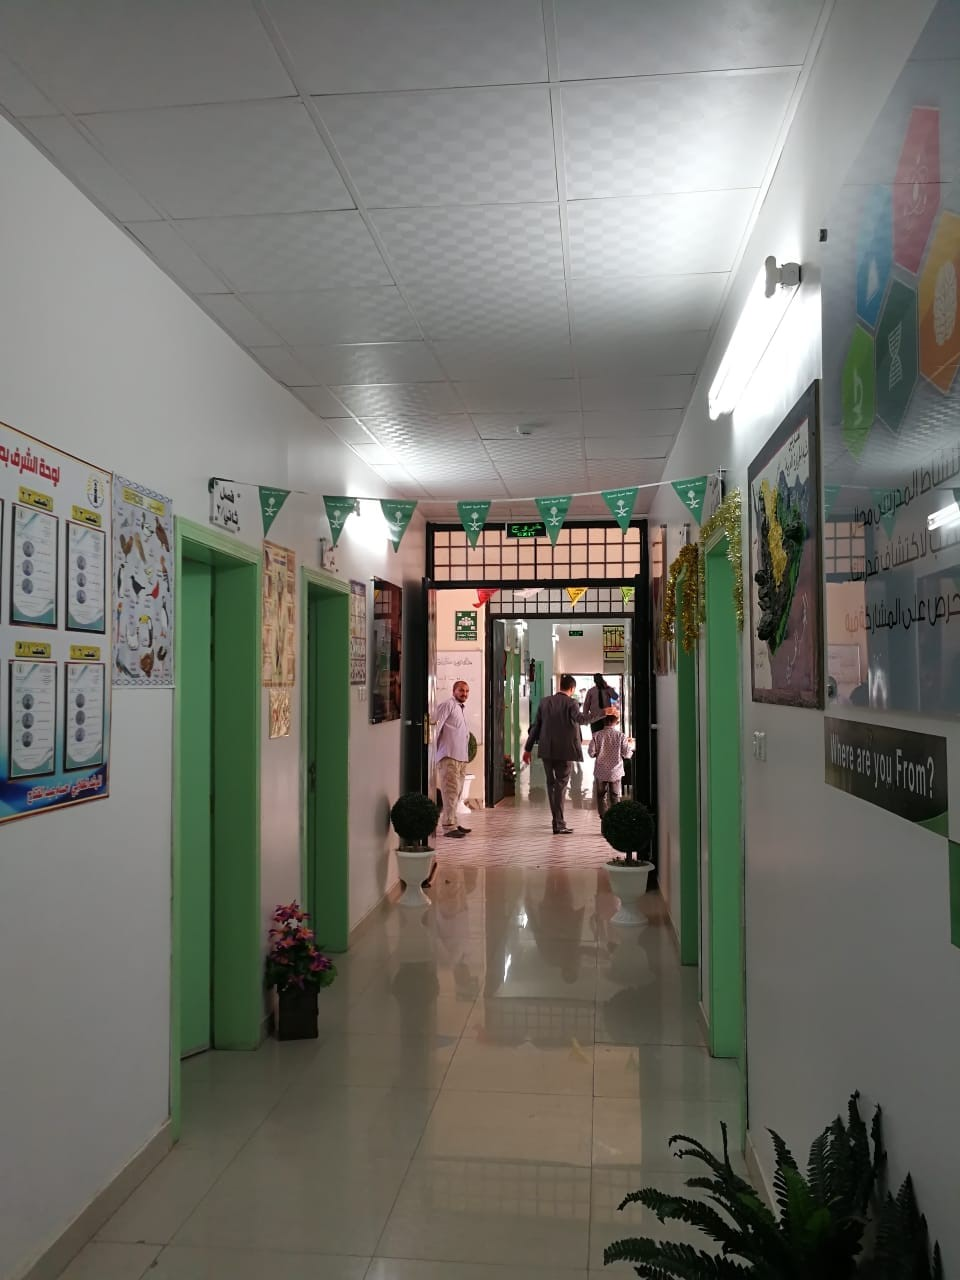 Inspectors track down a private school in Riyadh because of posting job ad for non-Saudis: MLSD